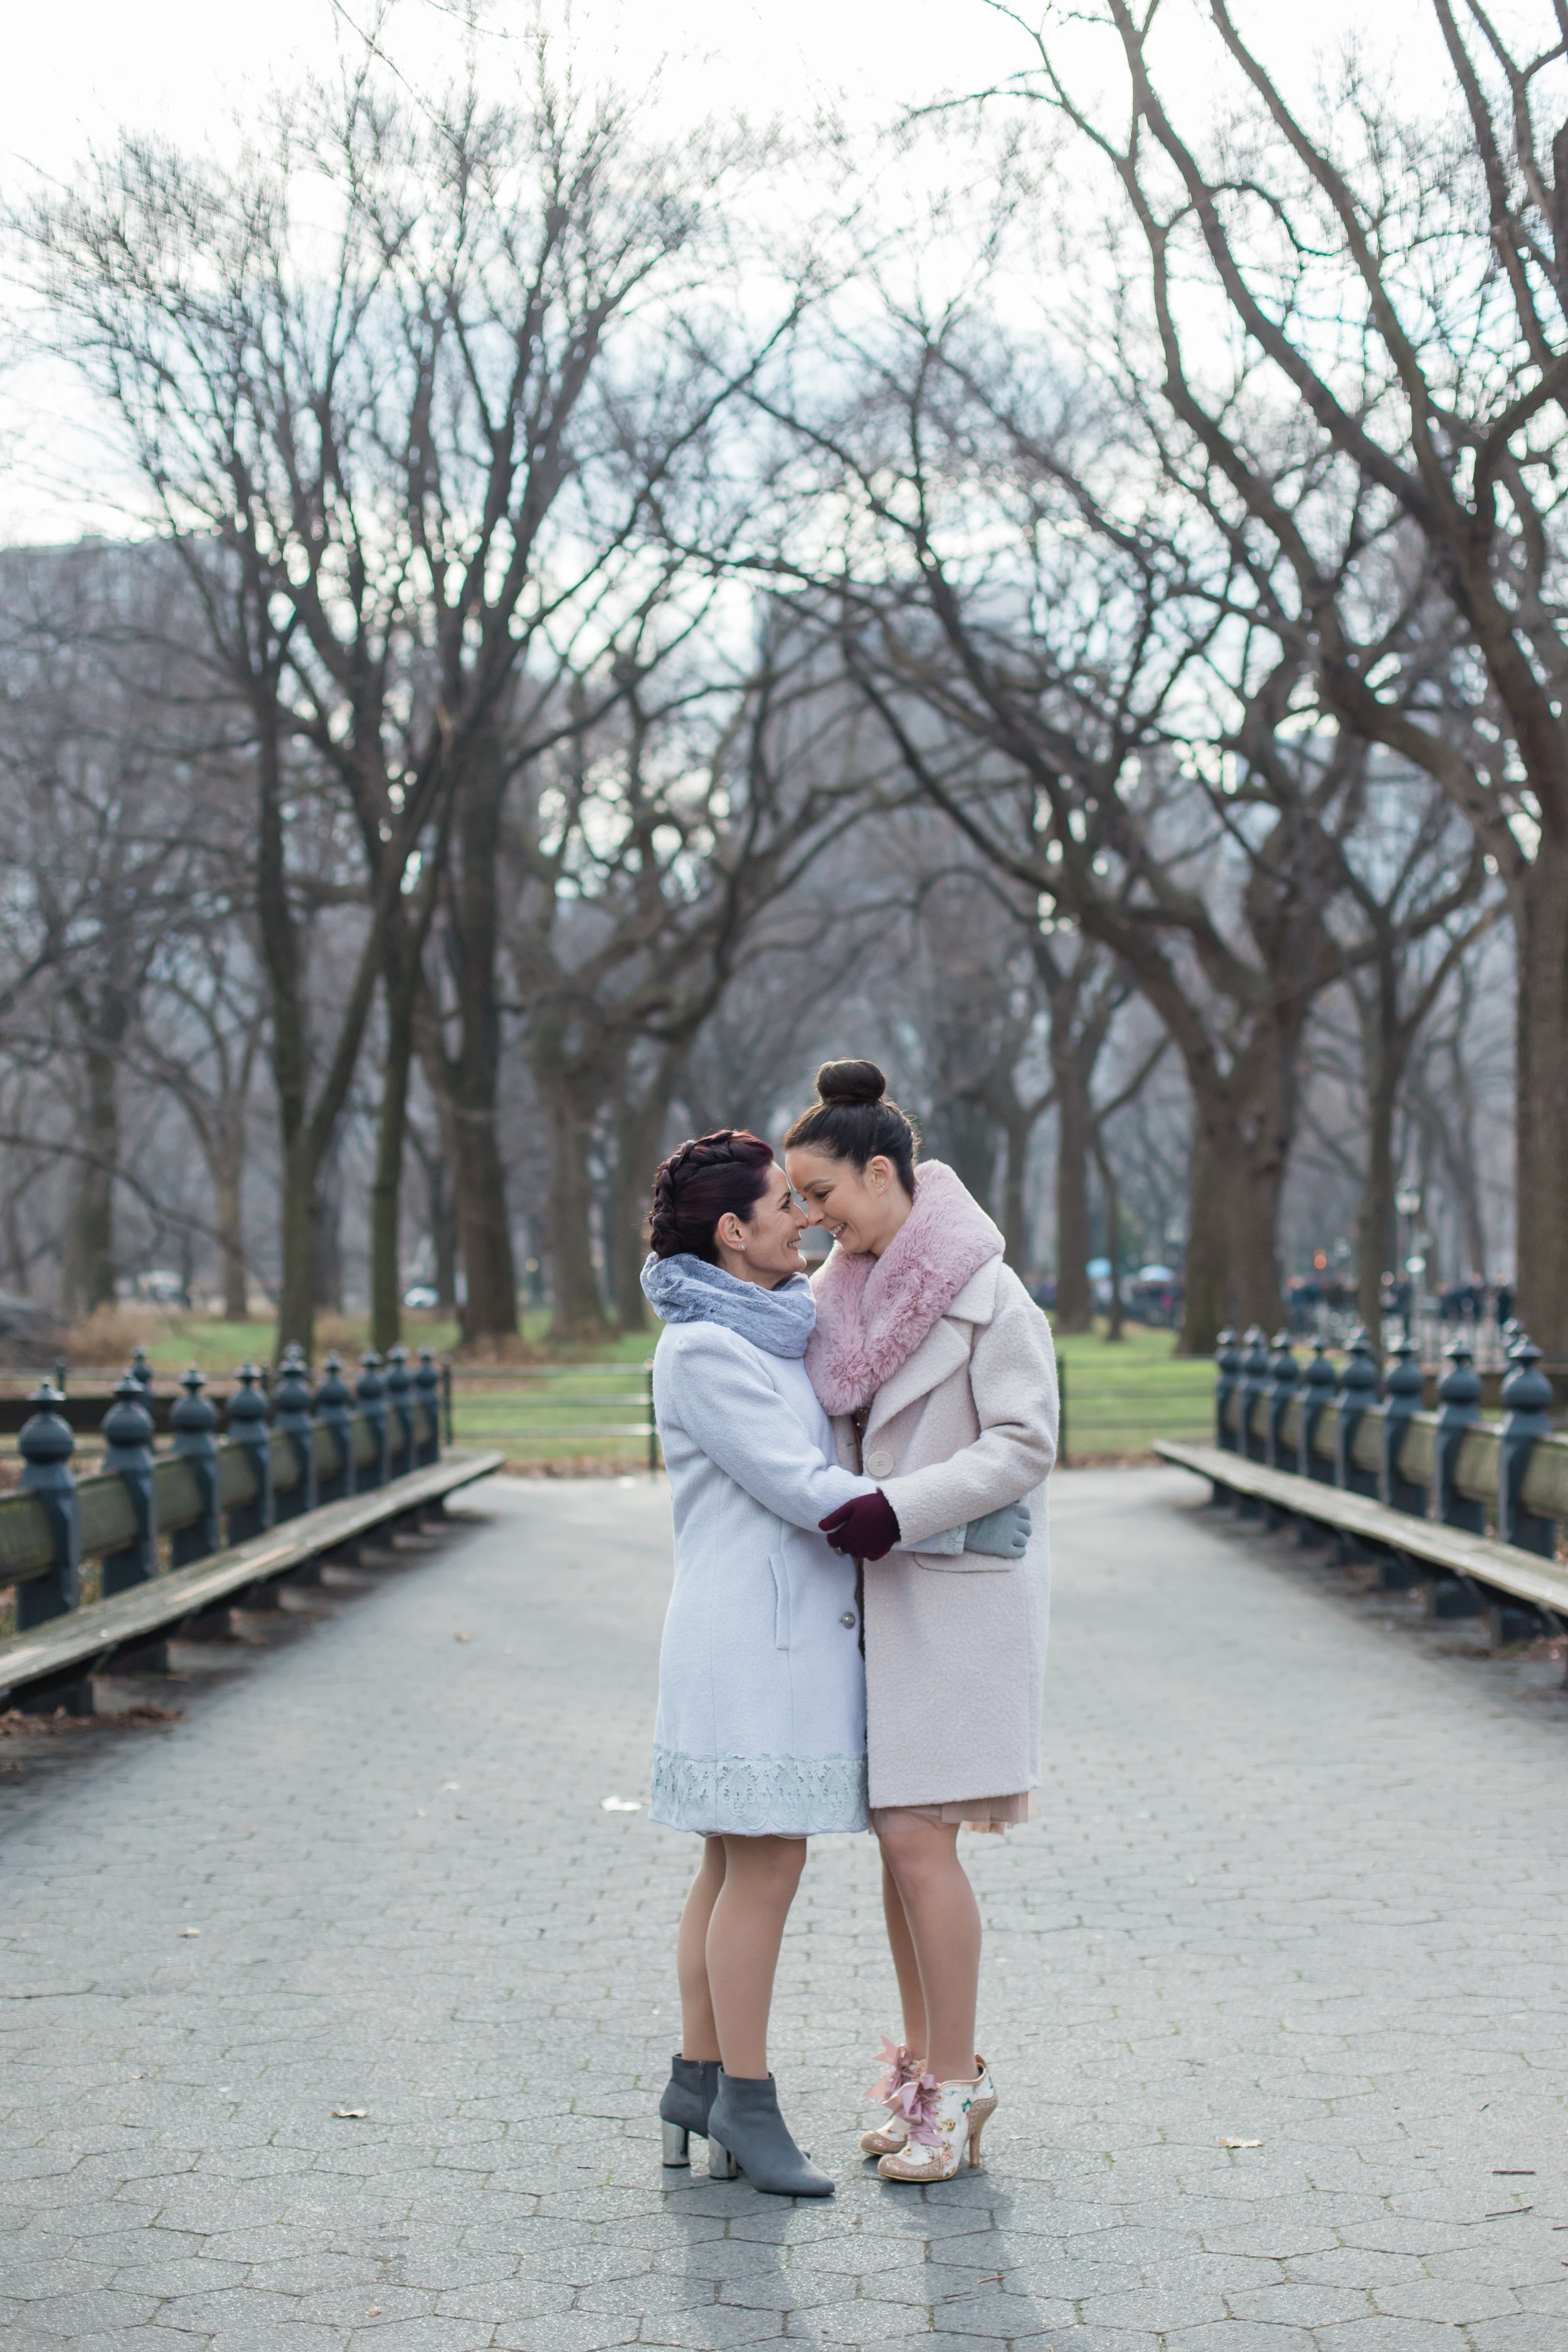 Kate-Alison-Photography-Central-Park-Elopement-Kathryn-Mary-122618-127.jpg